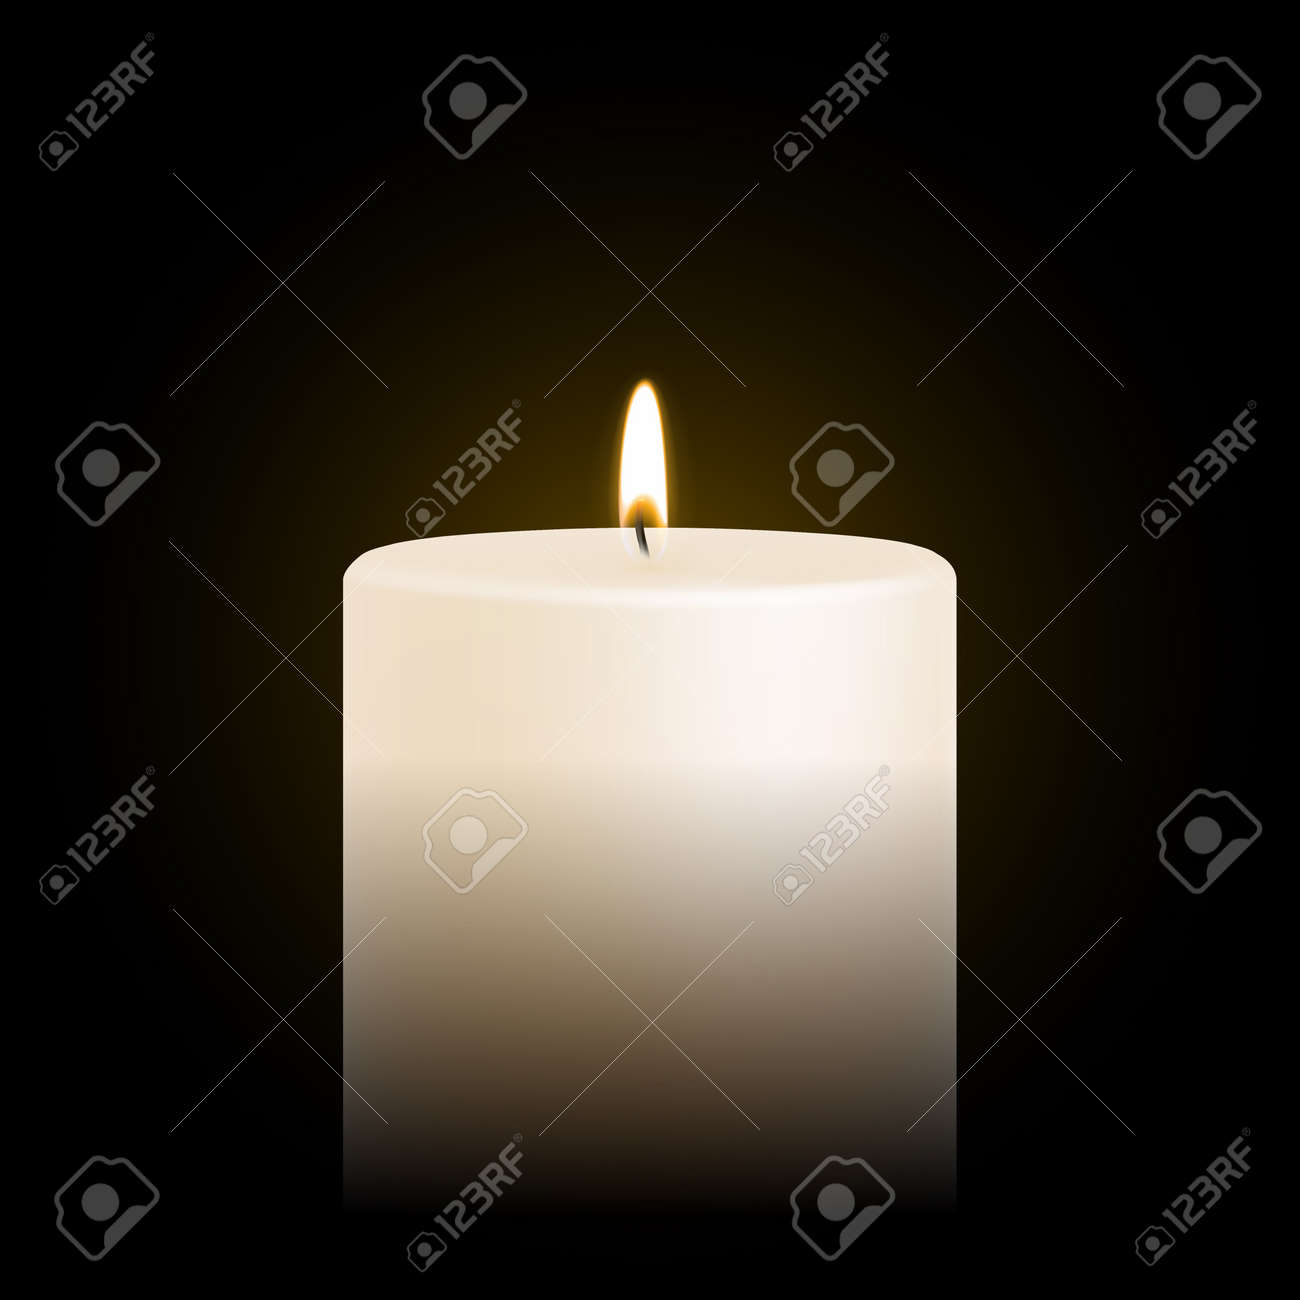 Candle light or candlelight flame isolated 3D icon on black background